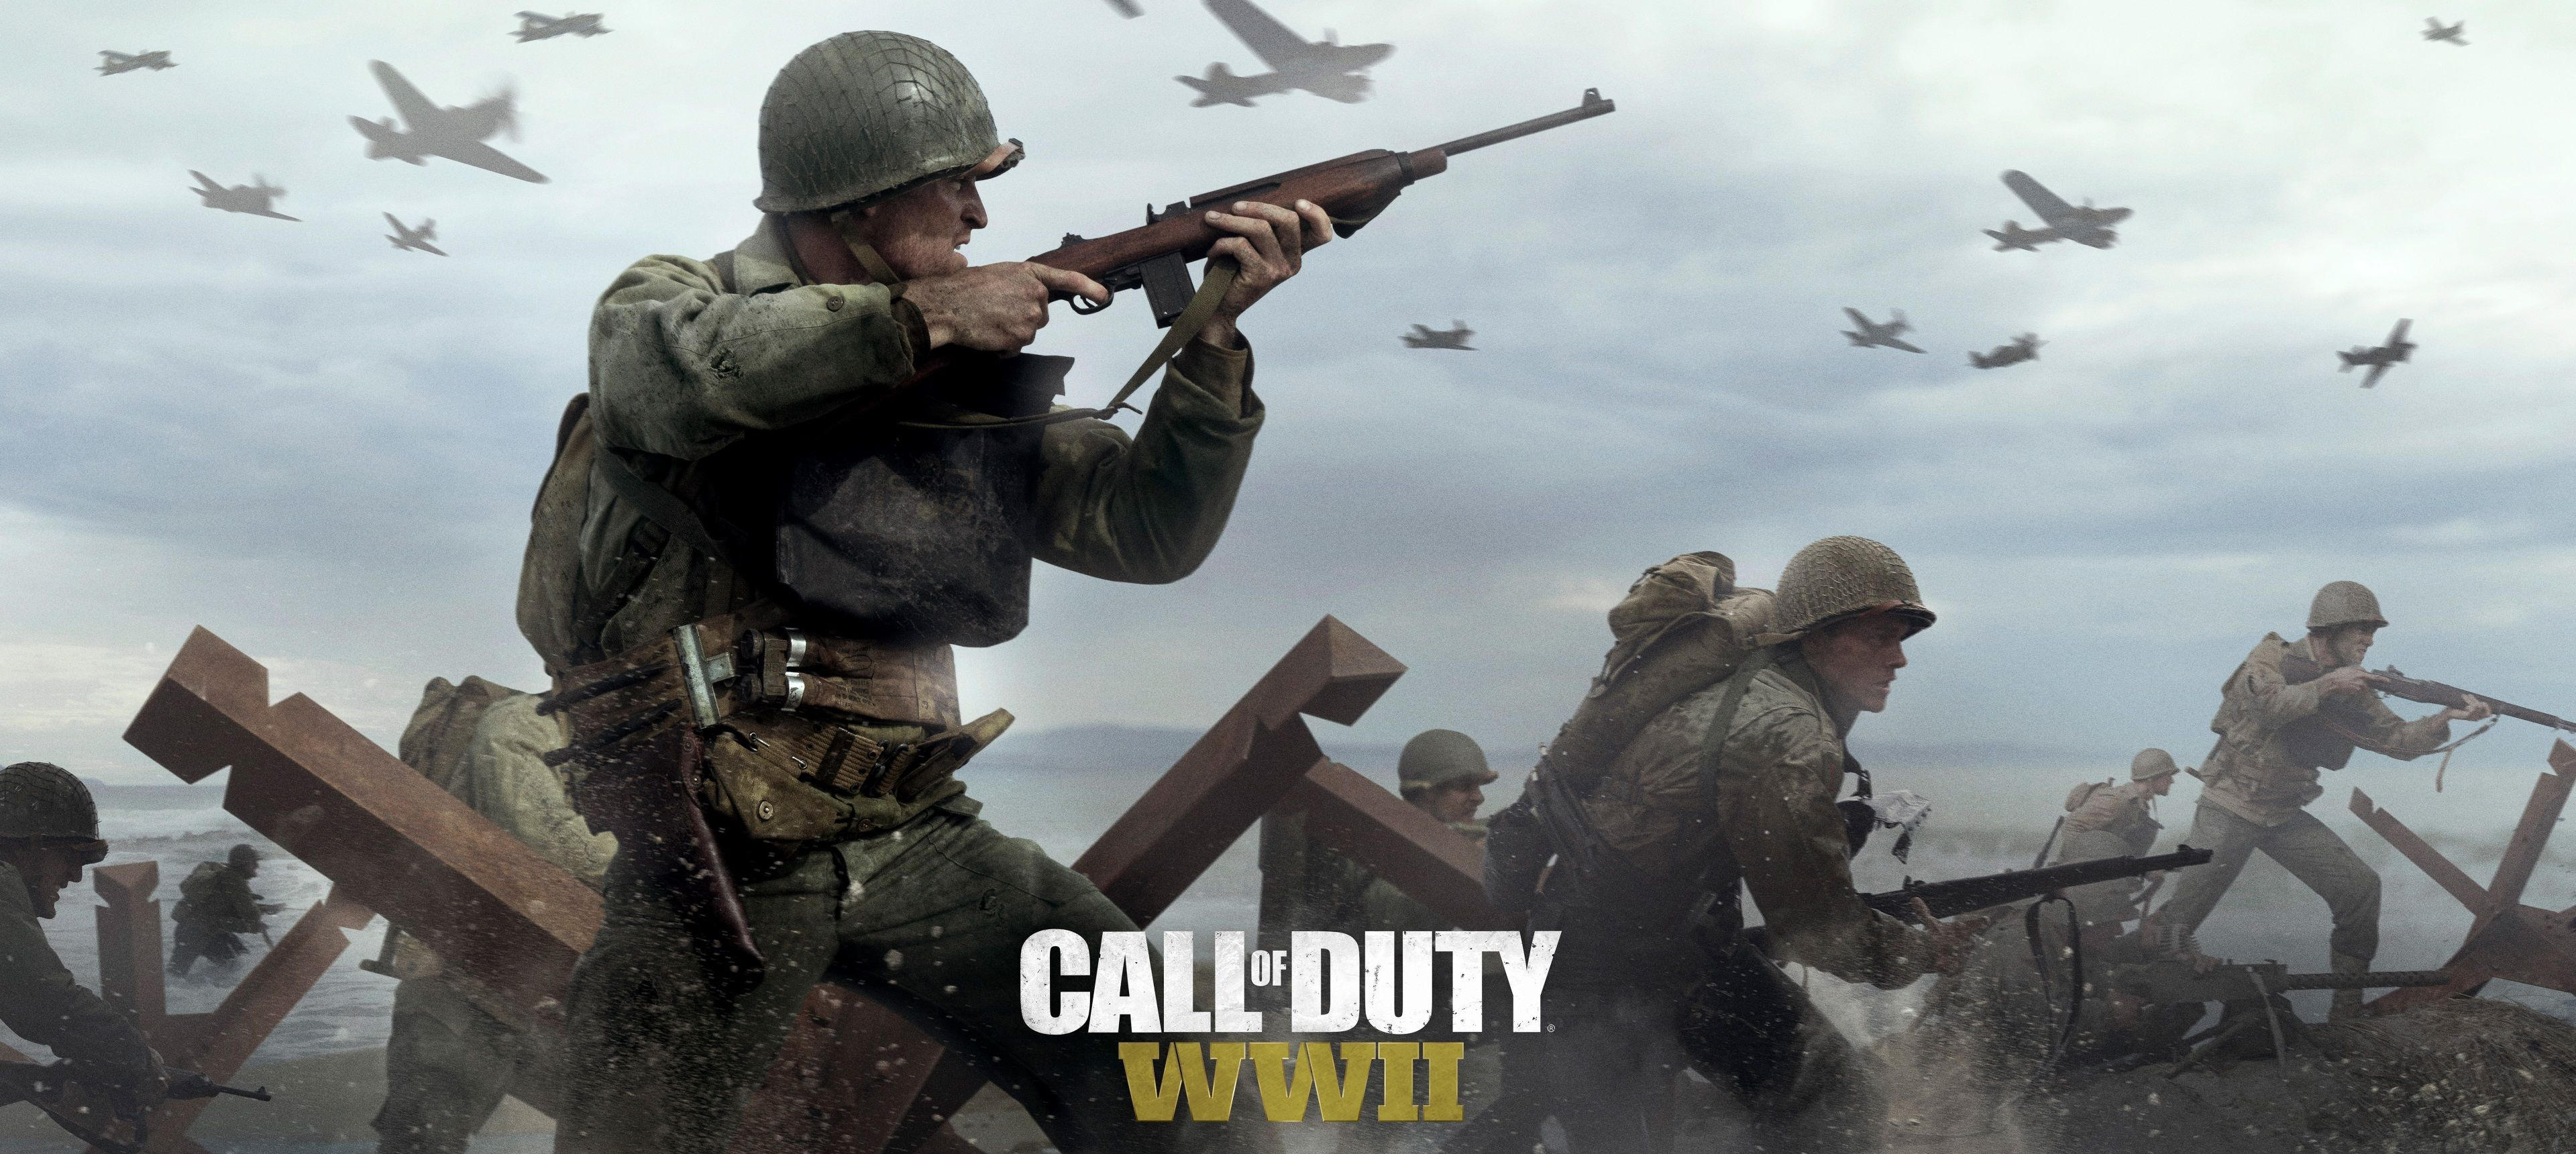 3840x1720 Call Of Duty Wwii 4k Download Wallpaper For Pc